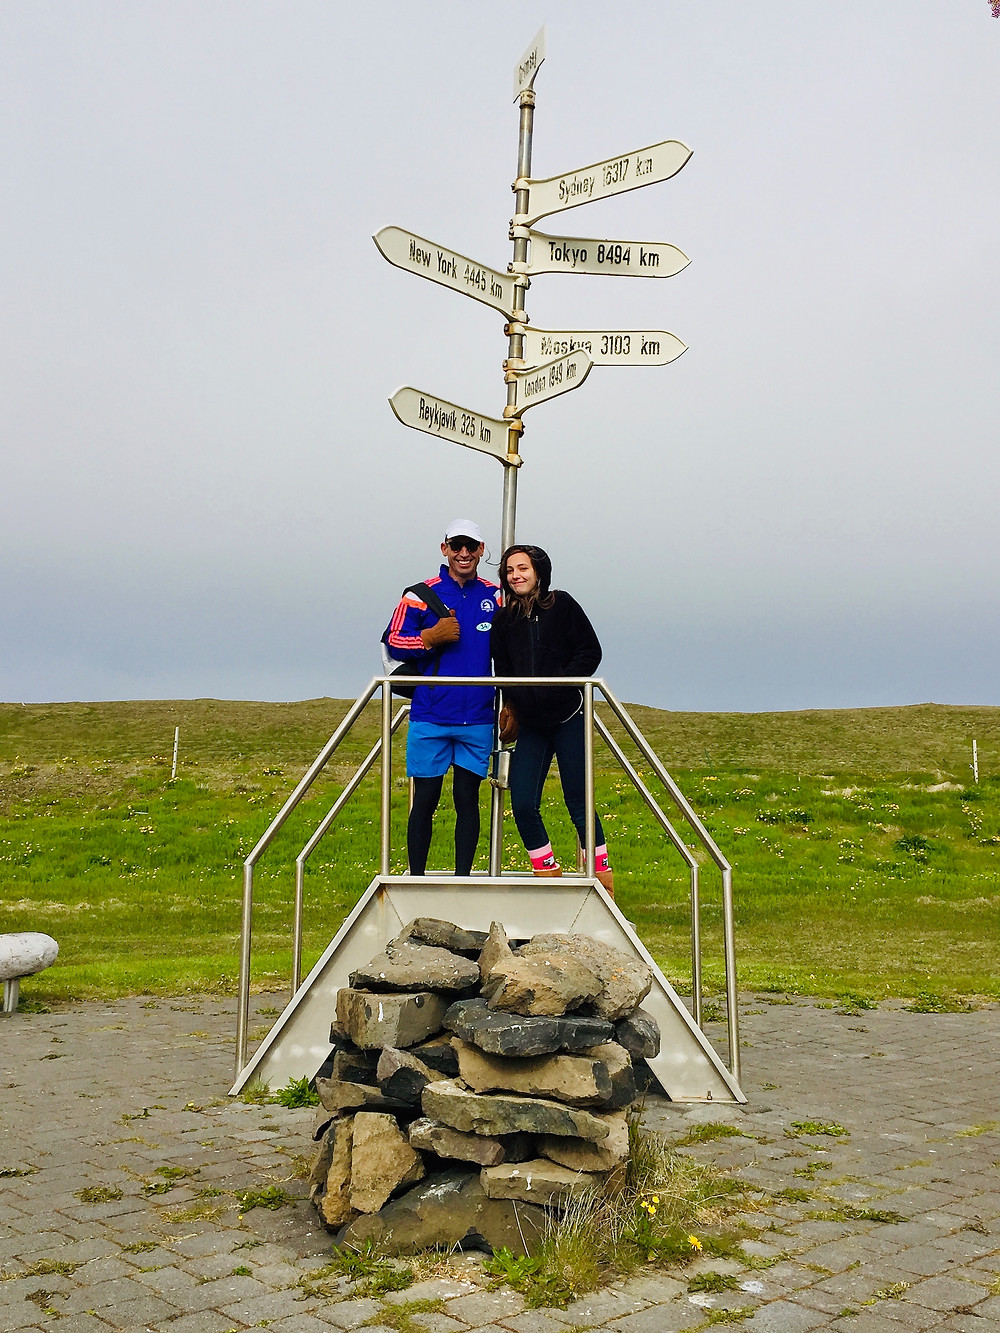 my husband and daughter, freezing in Grimsey Island, at the Arctic Circle distance and direction market